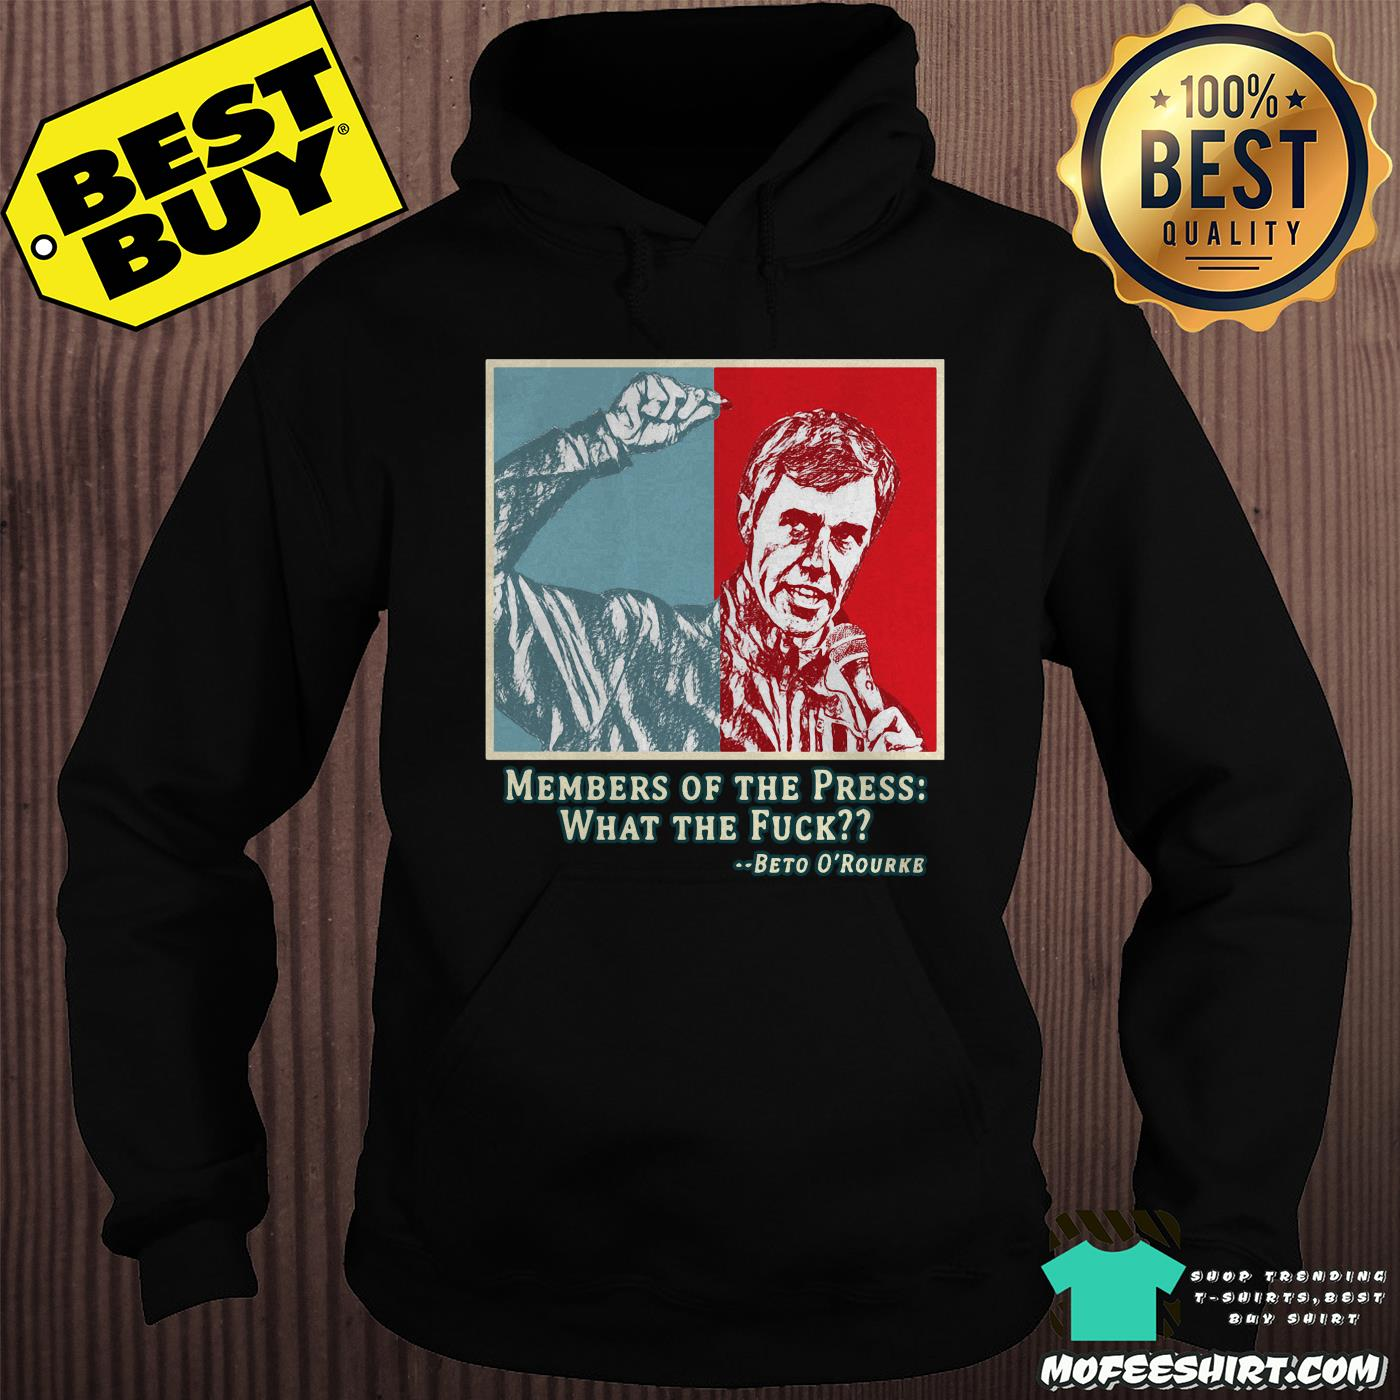 members of the press what the fuck beto orourke hoodie - Members of the press what the fuck Beto O'Rourke shirt